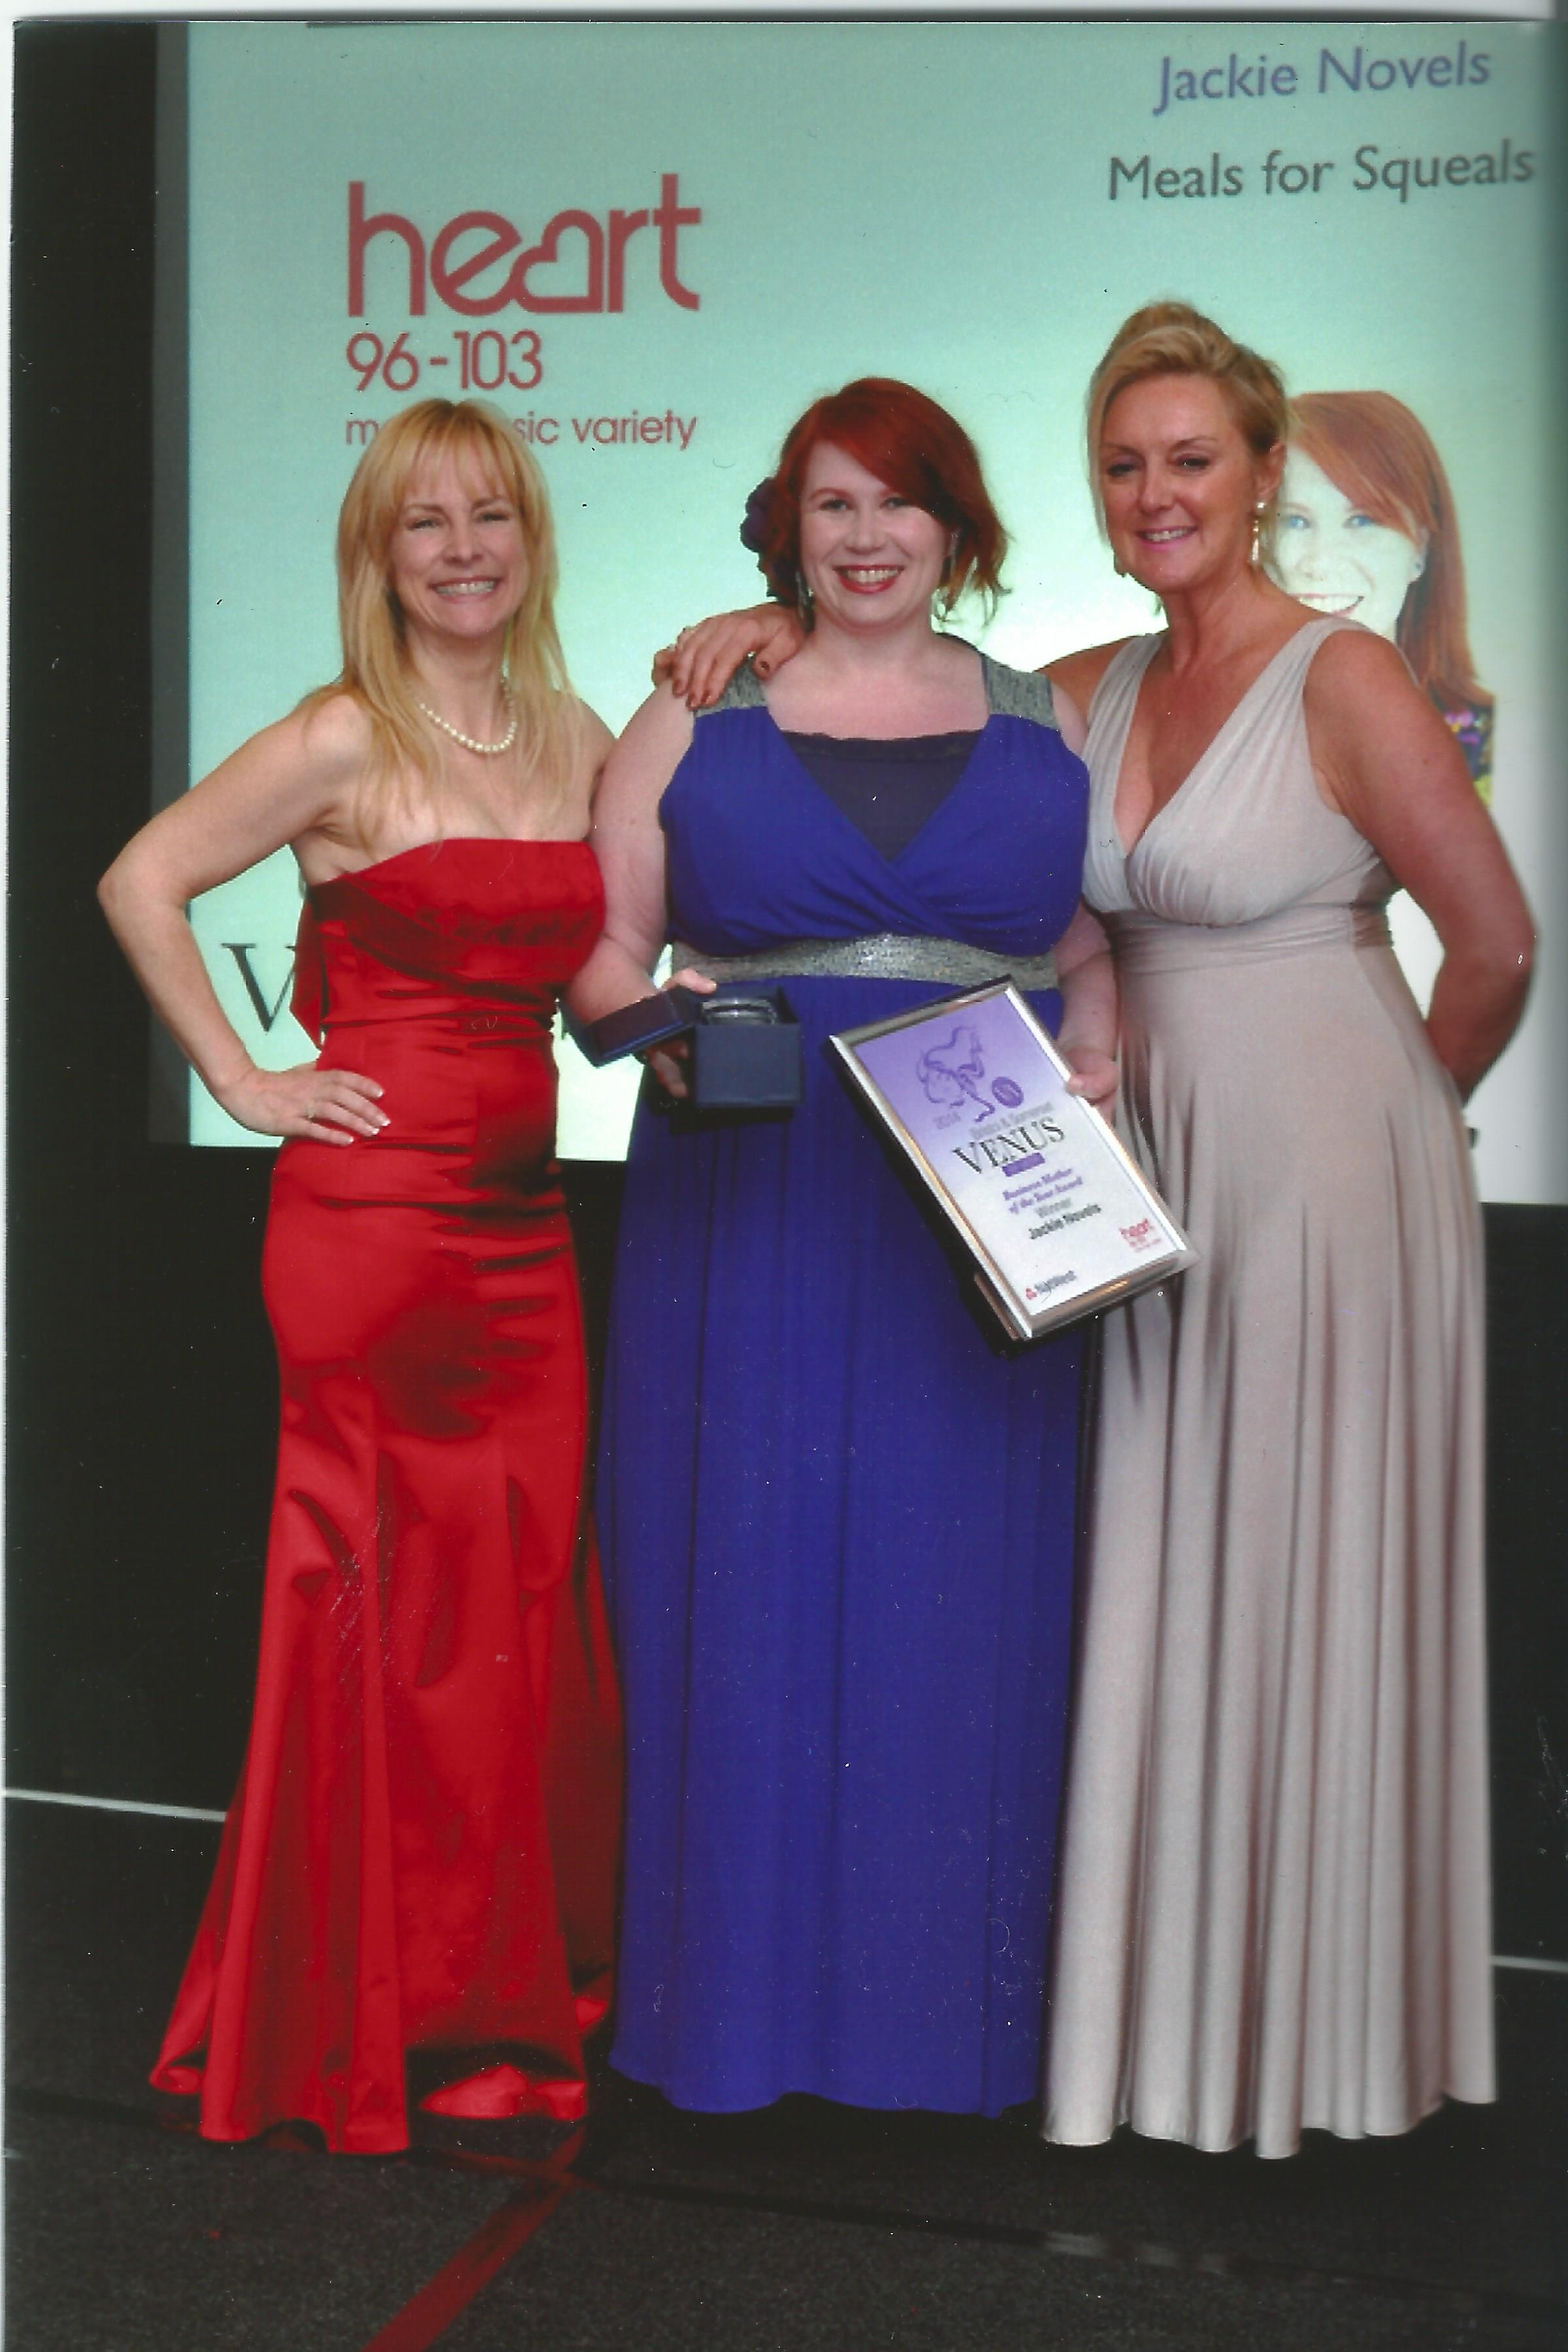 Jackie Novels is presented with her award by Paulina Gillespie, from Heart FM, and Tara Howard, founder of the Venus Awards